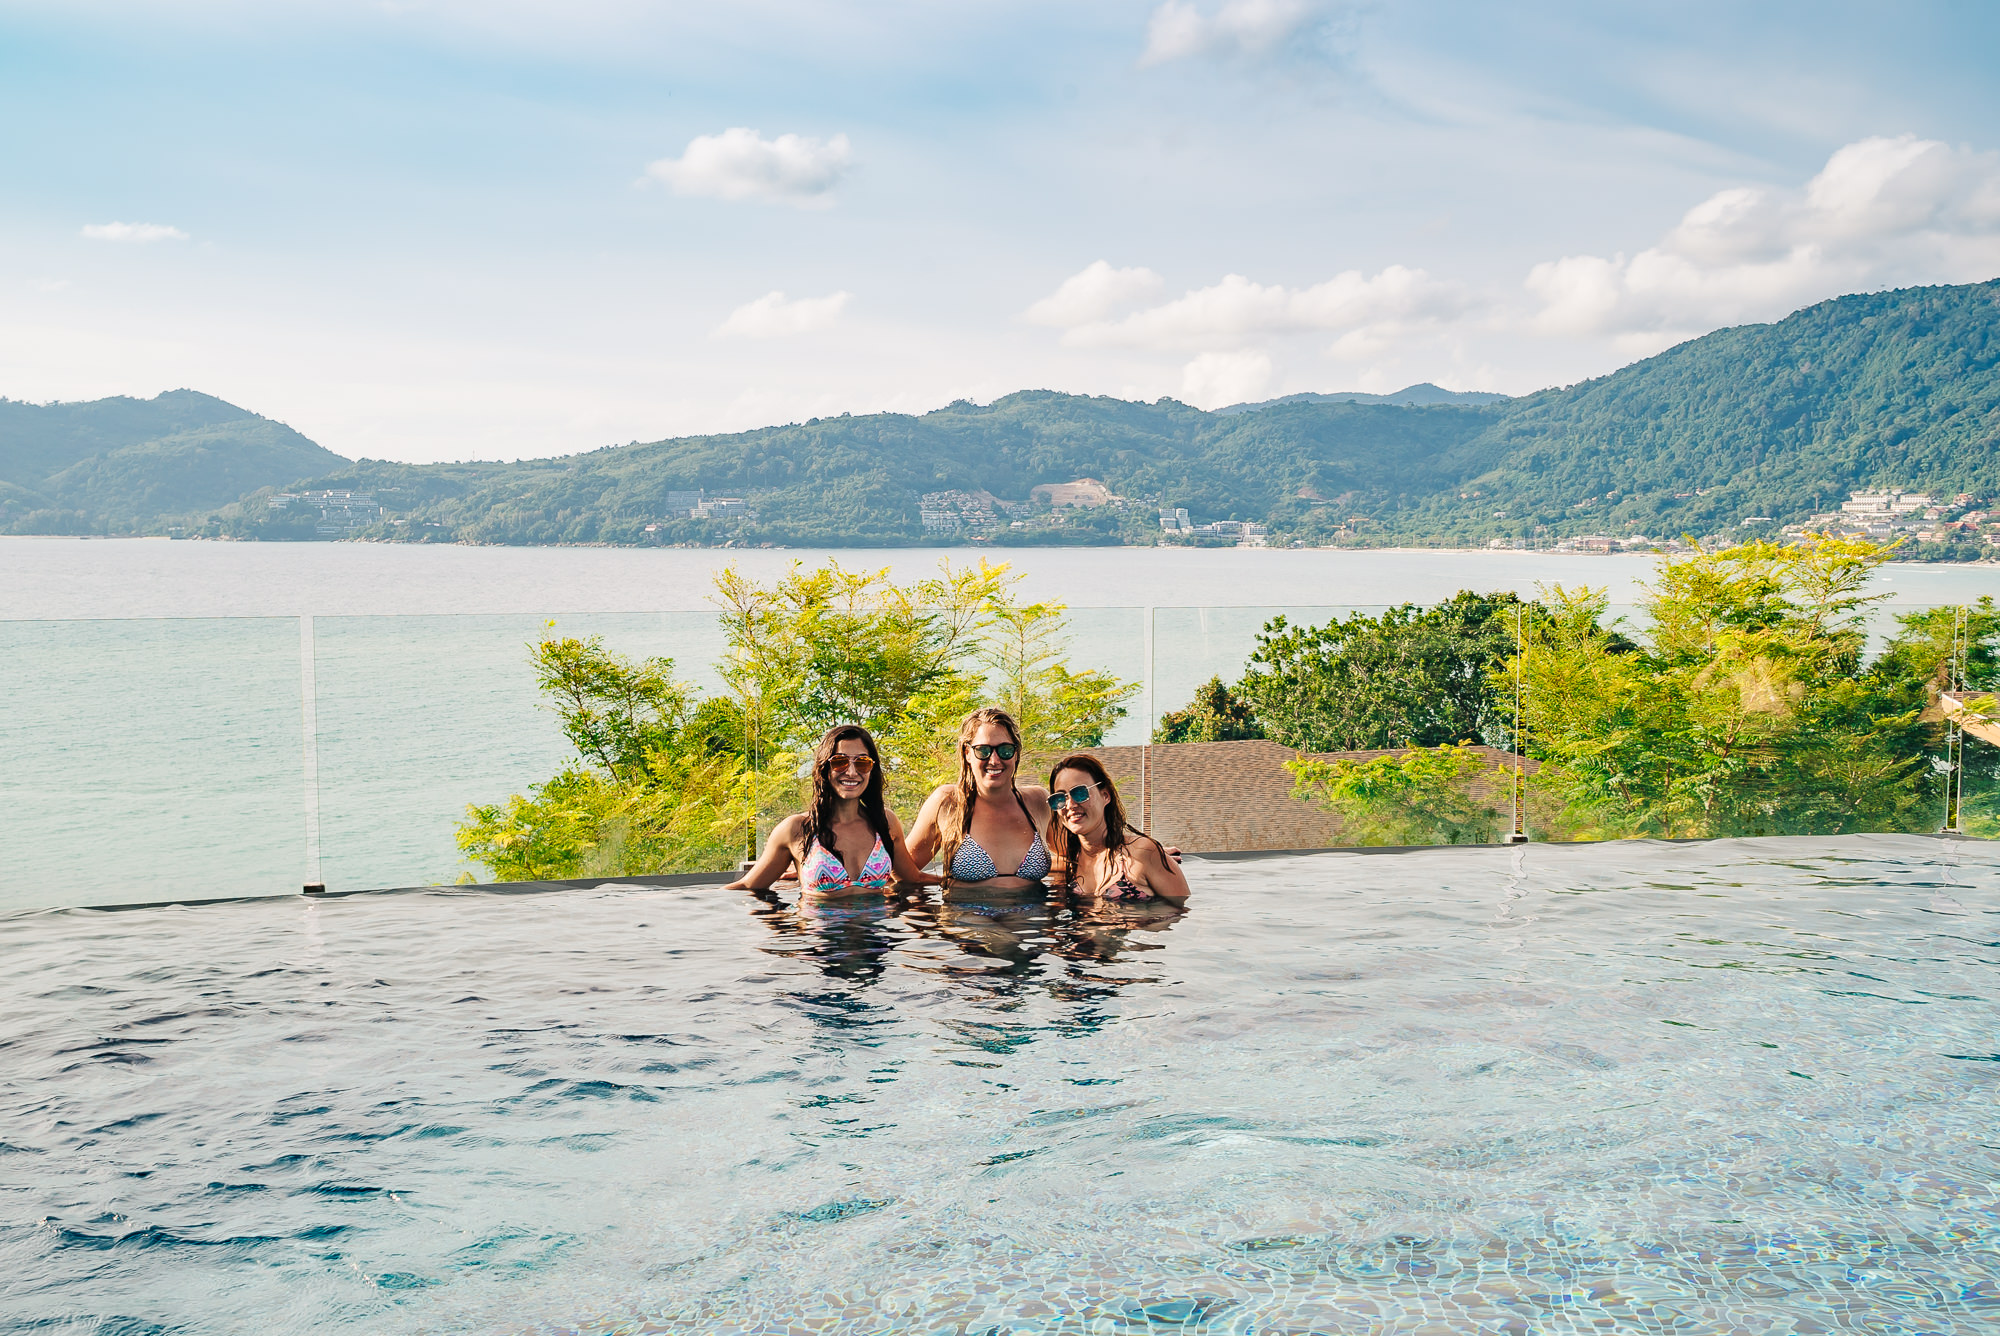 The beautiful infinity pool at the Clubhouse of Amari Phuket